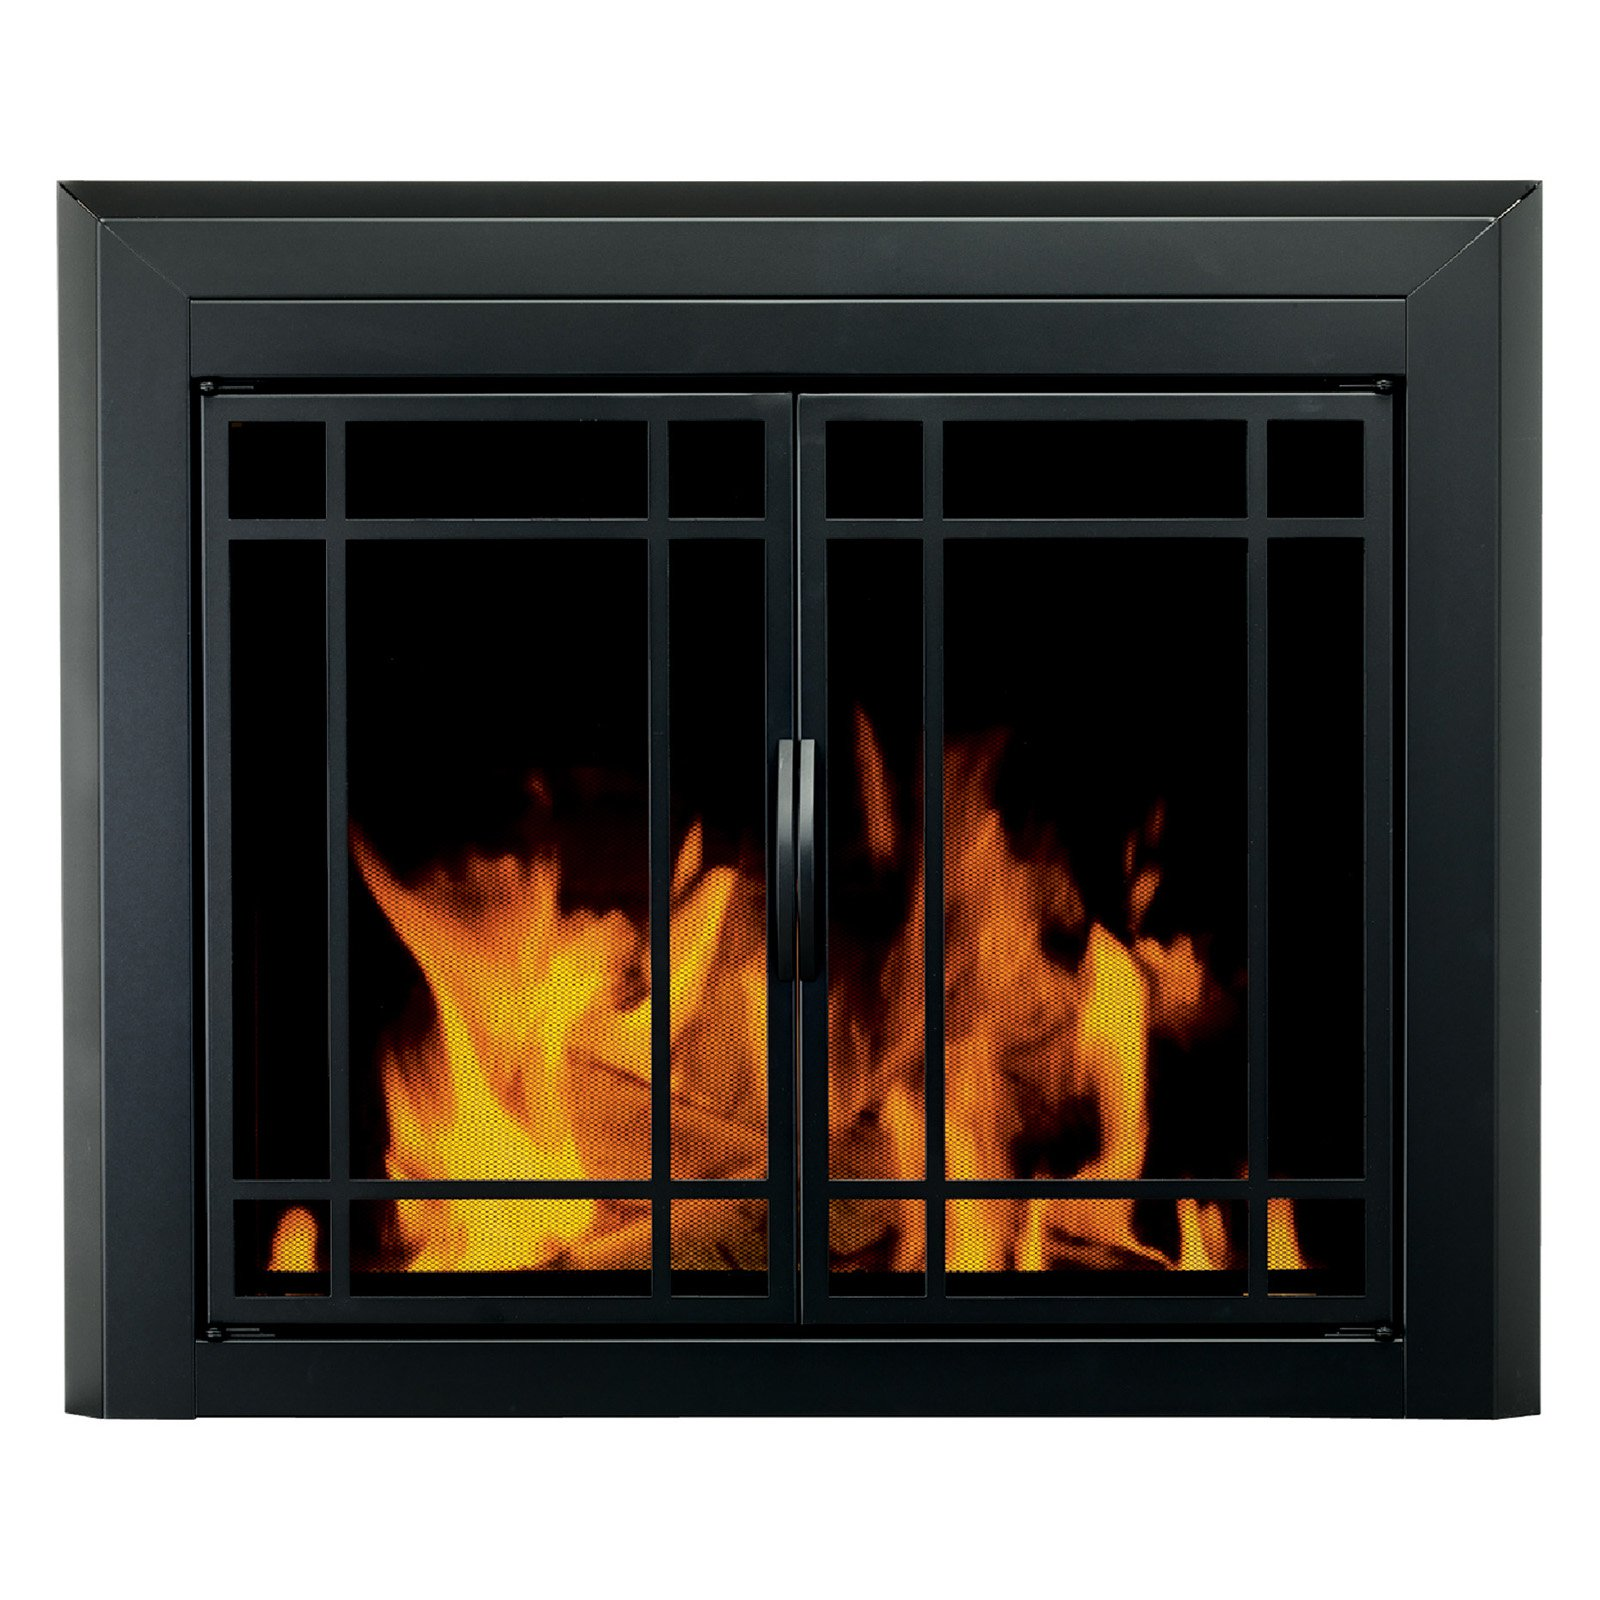 Pleasant Hearth Easton Prairie Cabinet Fireplace Screen and 9-Pane Smoked Glass Doors - Black